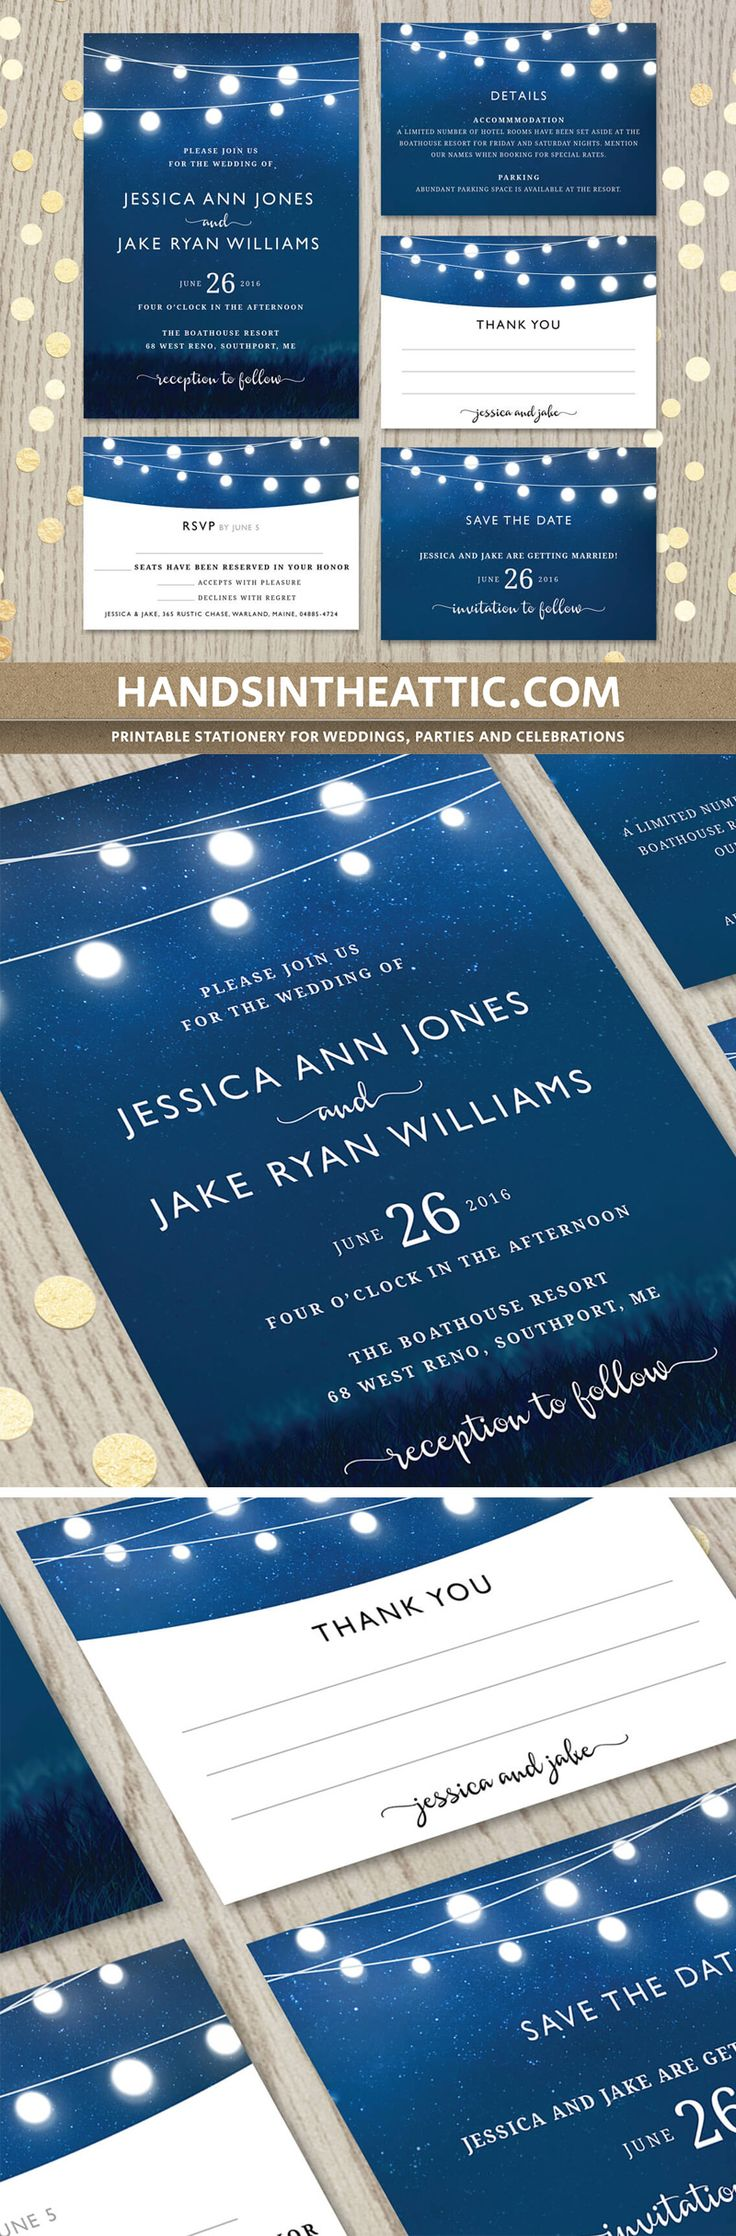 Royal blue wedding invitation set, customized printable suite containing invite, rsvp, thank you, details and save the date. Mix and match for just the cards you need!